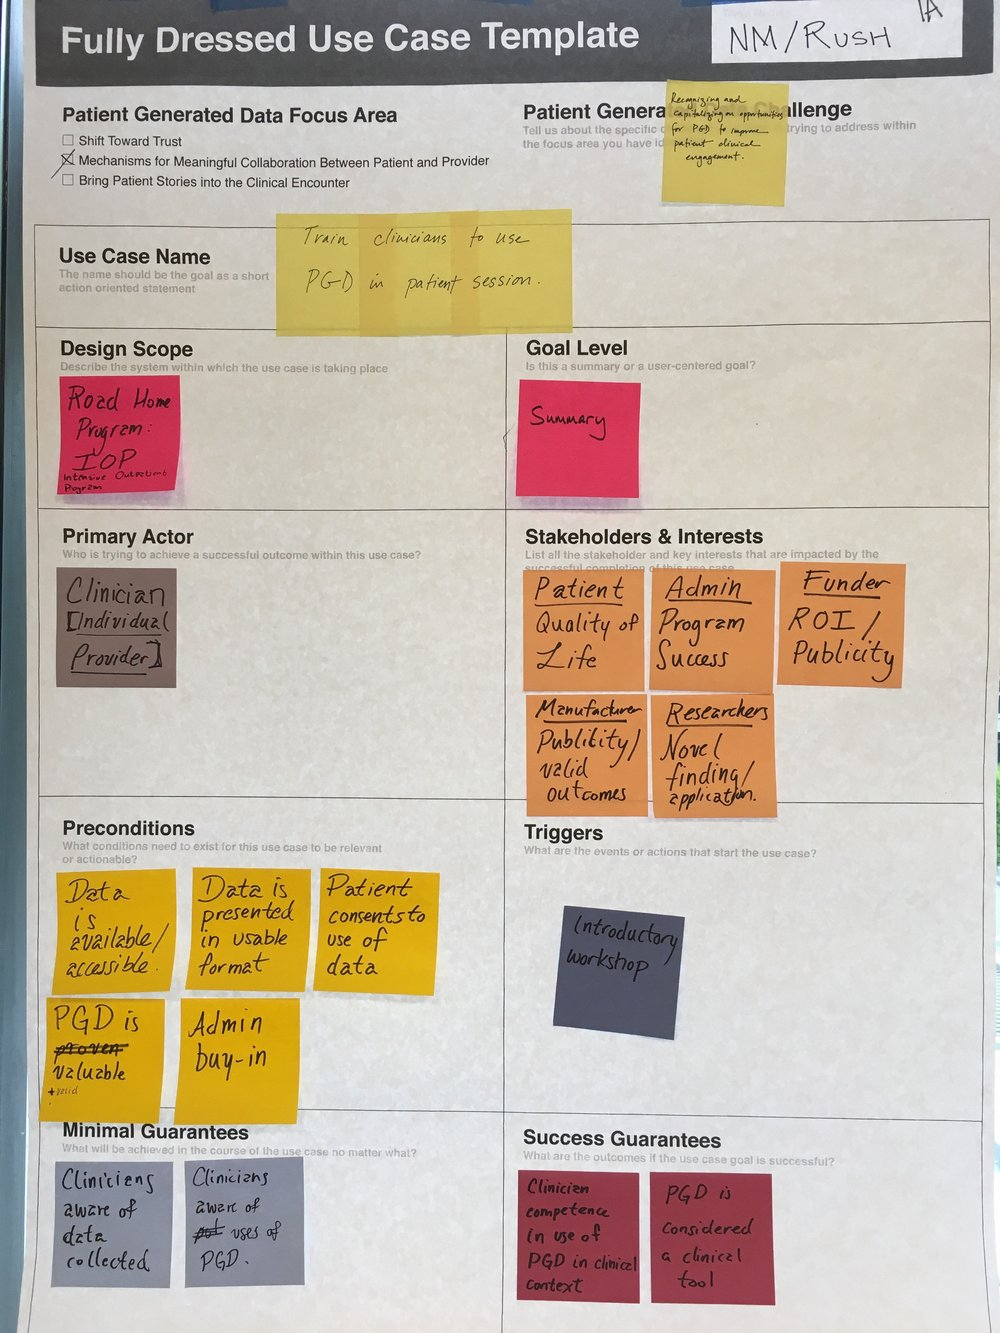 Use cases - One of our several scenarios explored through a use case template created by the Reos team.